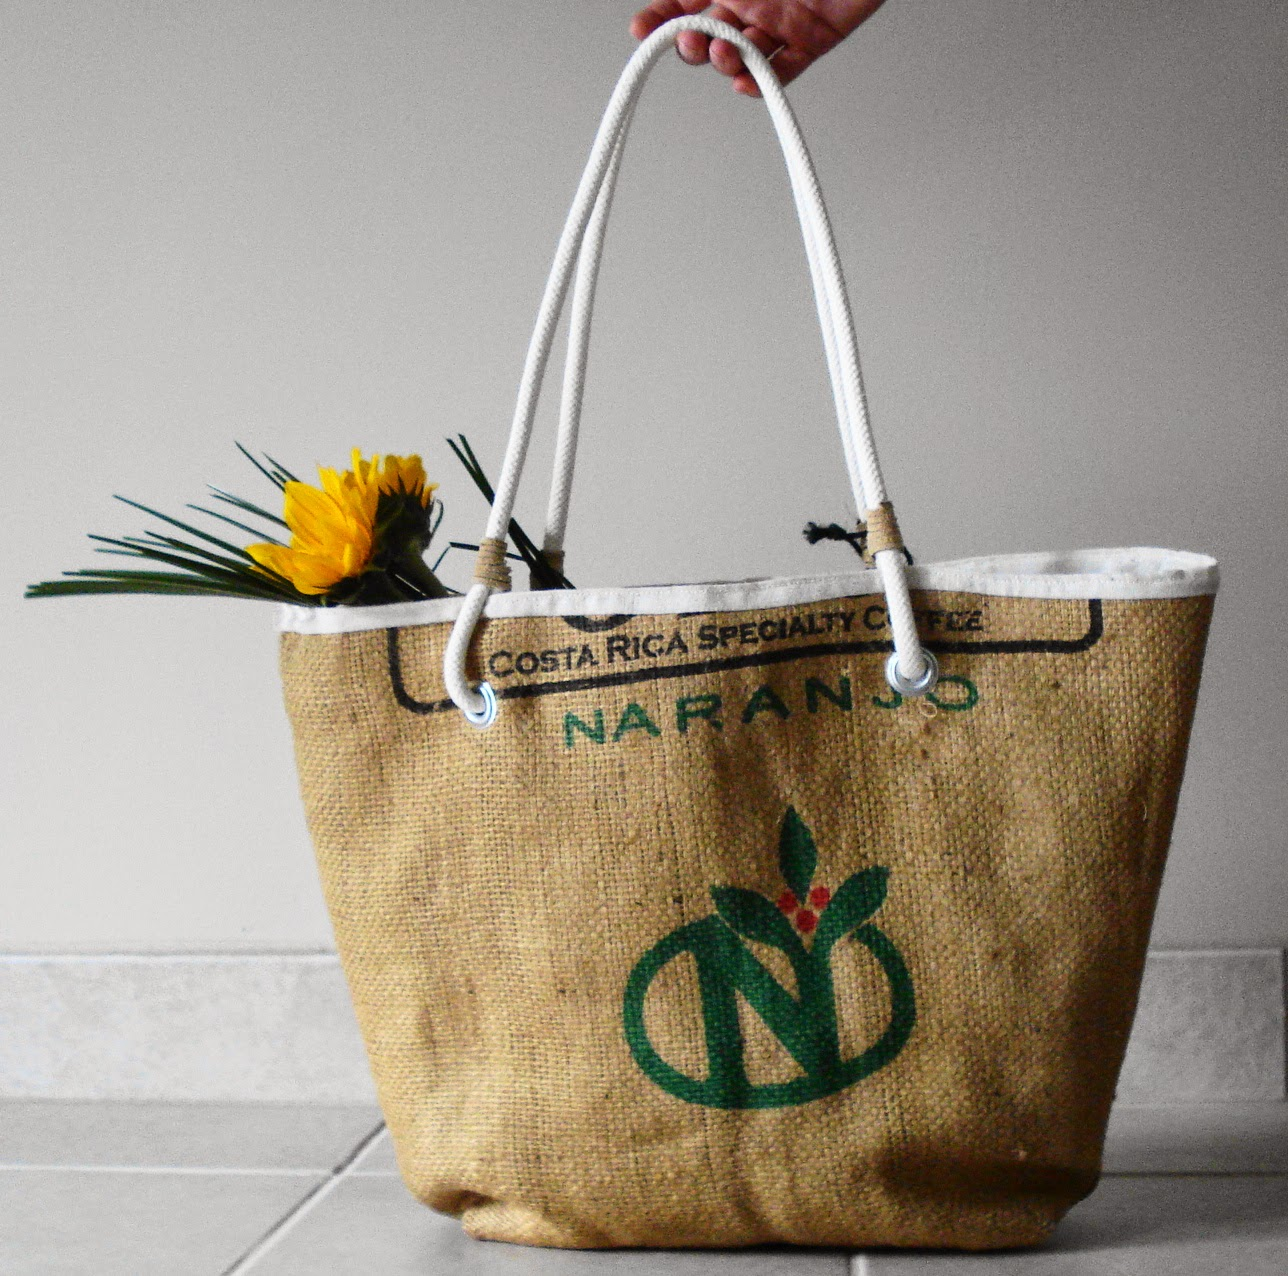 Costa Rica burlap beach bag - Lina and Vi - plymouth MI - linaaandvi.blogspot.com